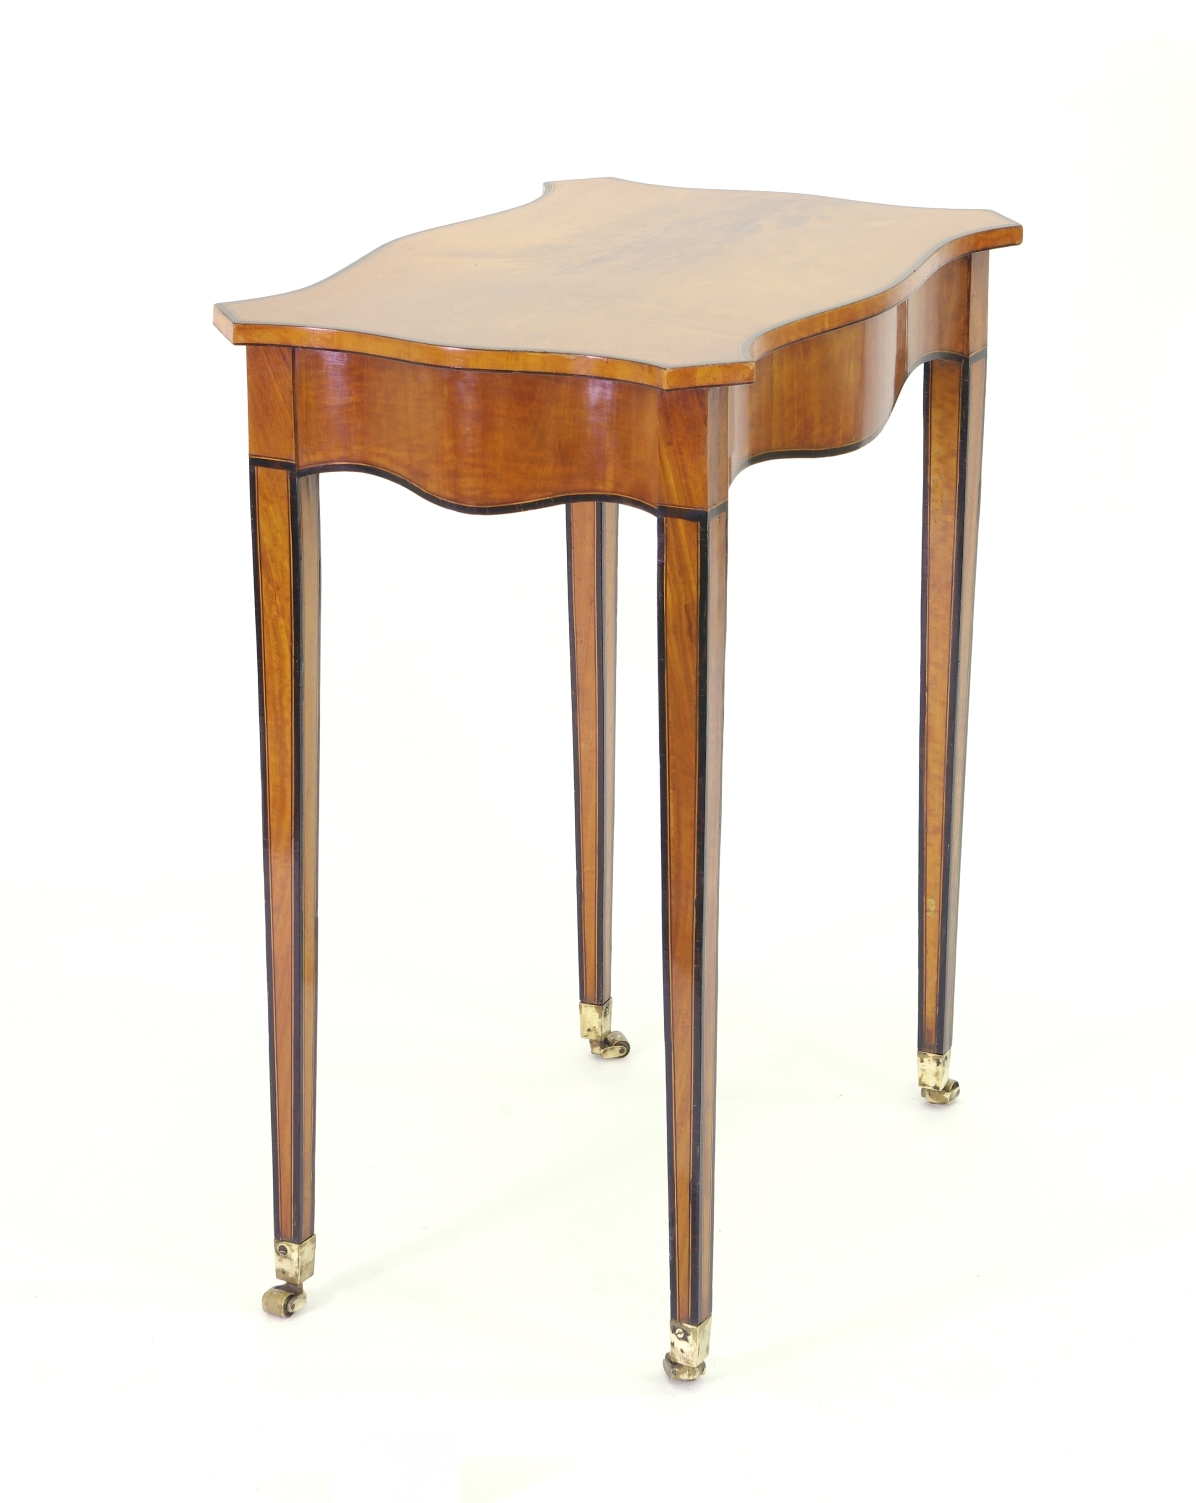 View 3: George III Satinwood Side Table, c. 1790